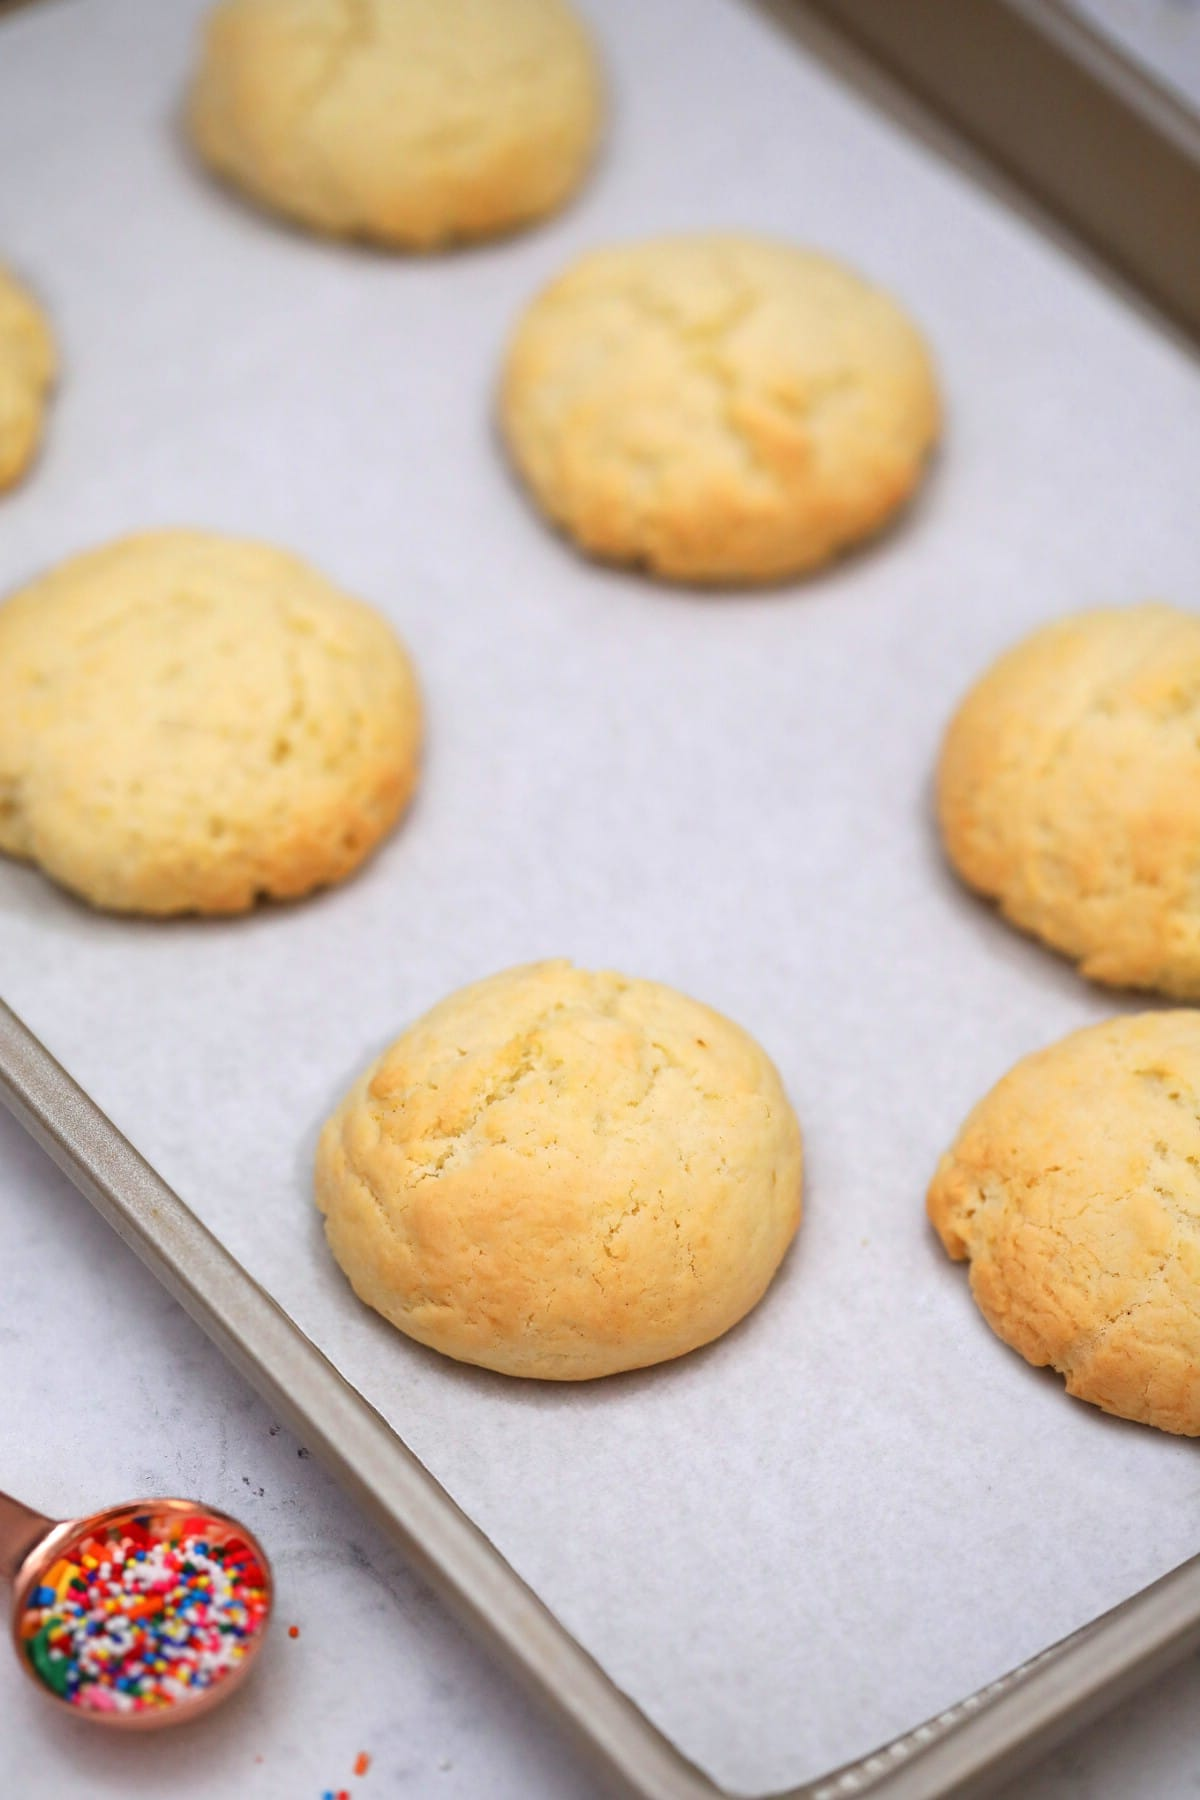 Baked sugar cookies on cookie sheet